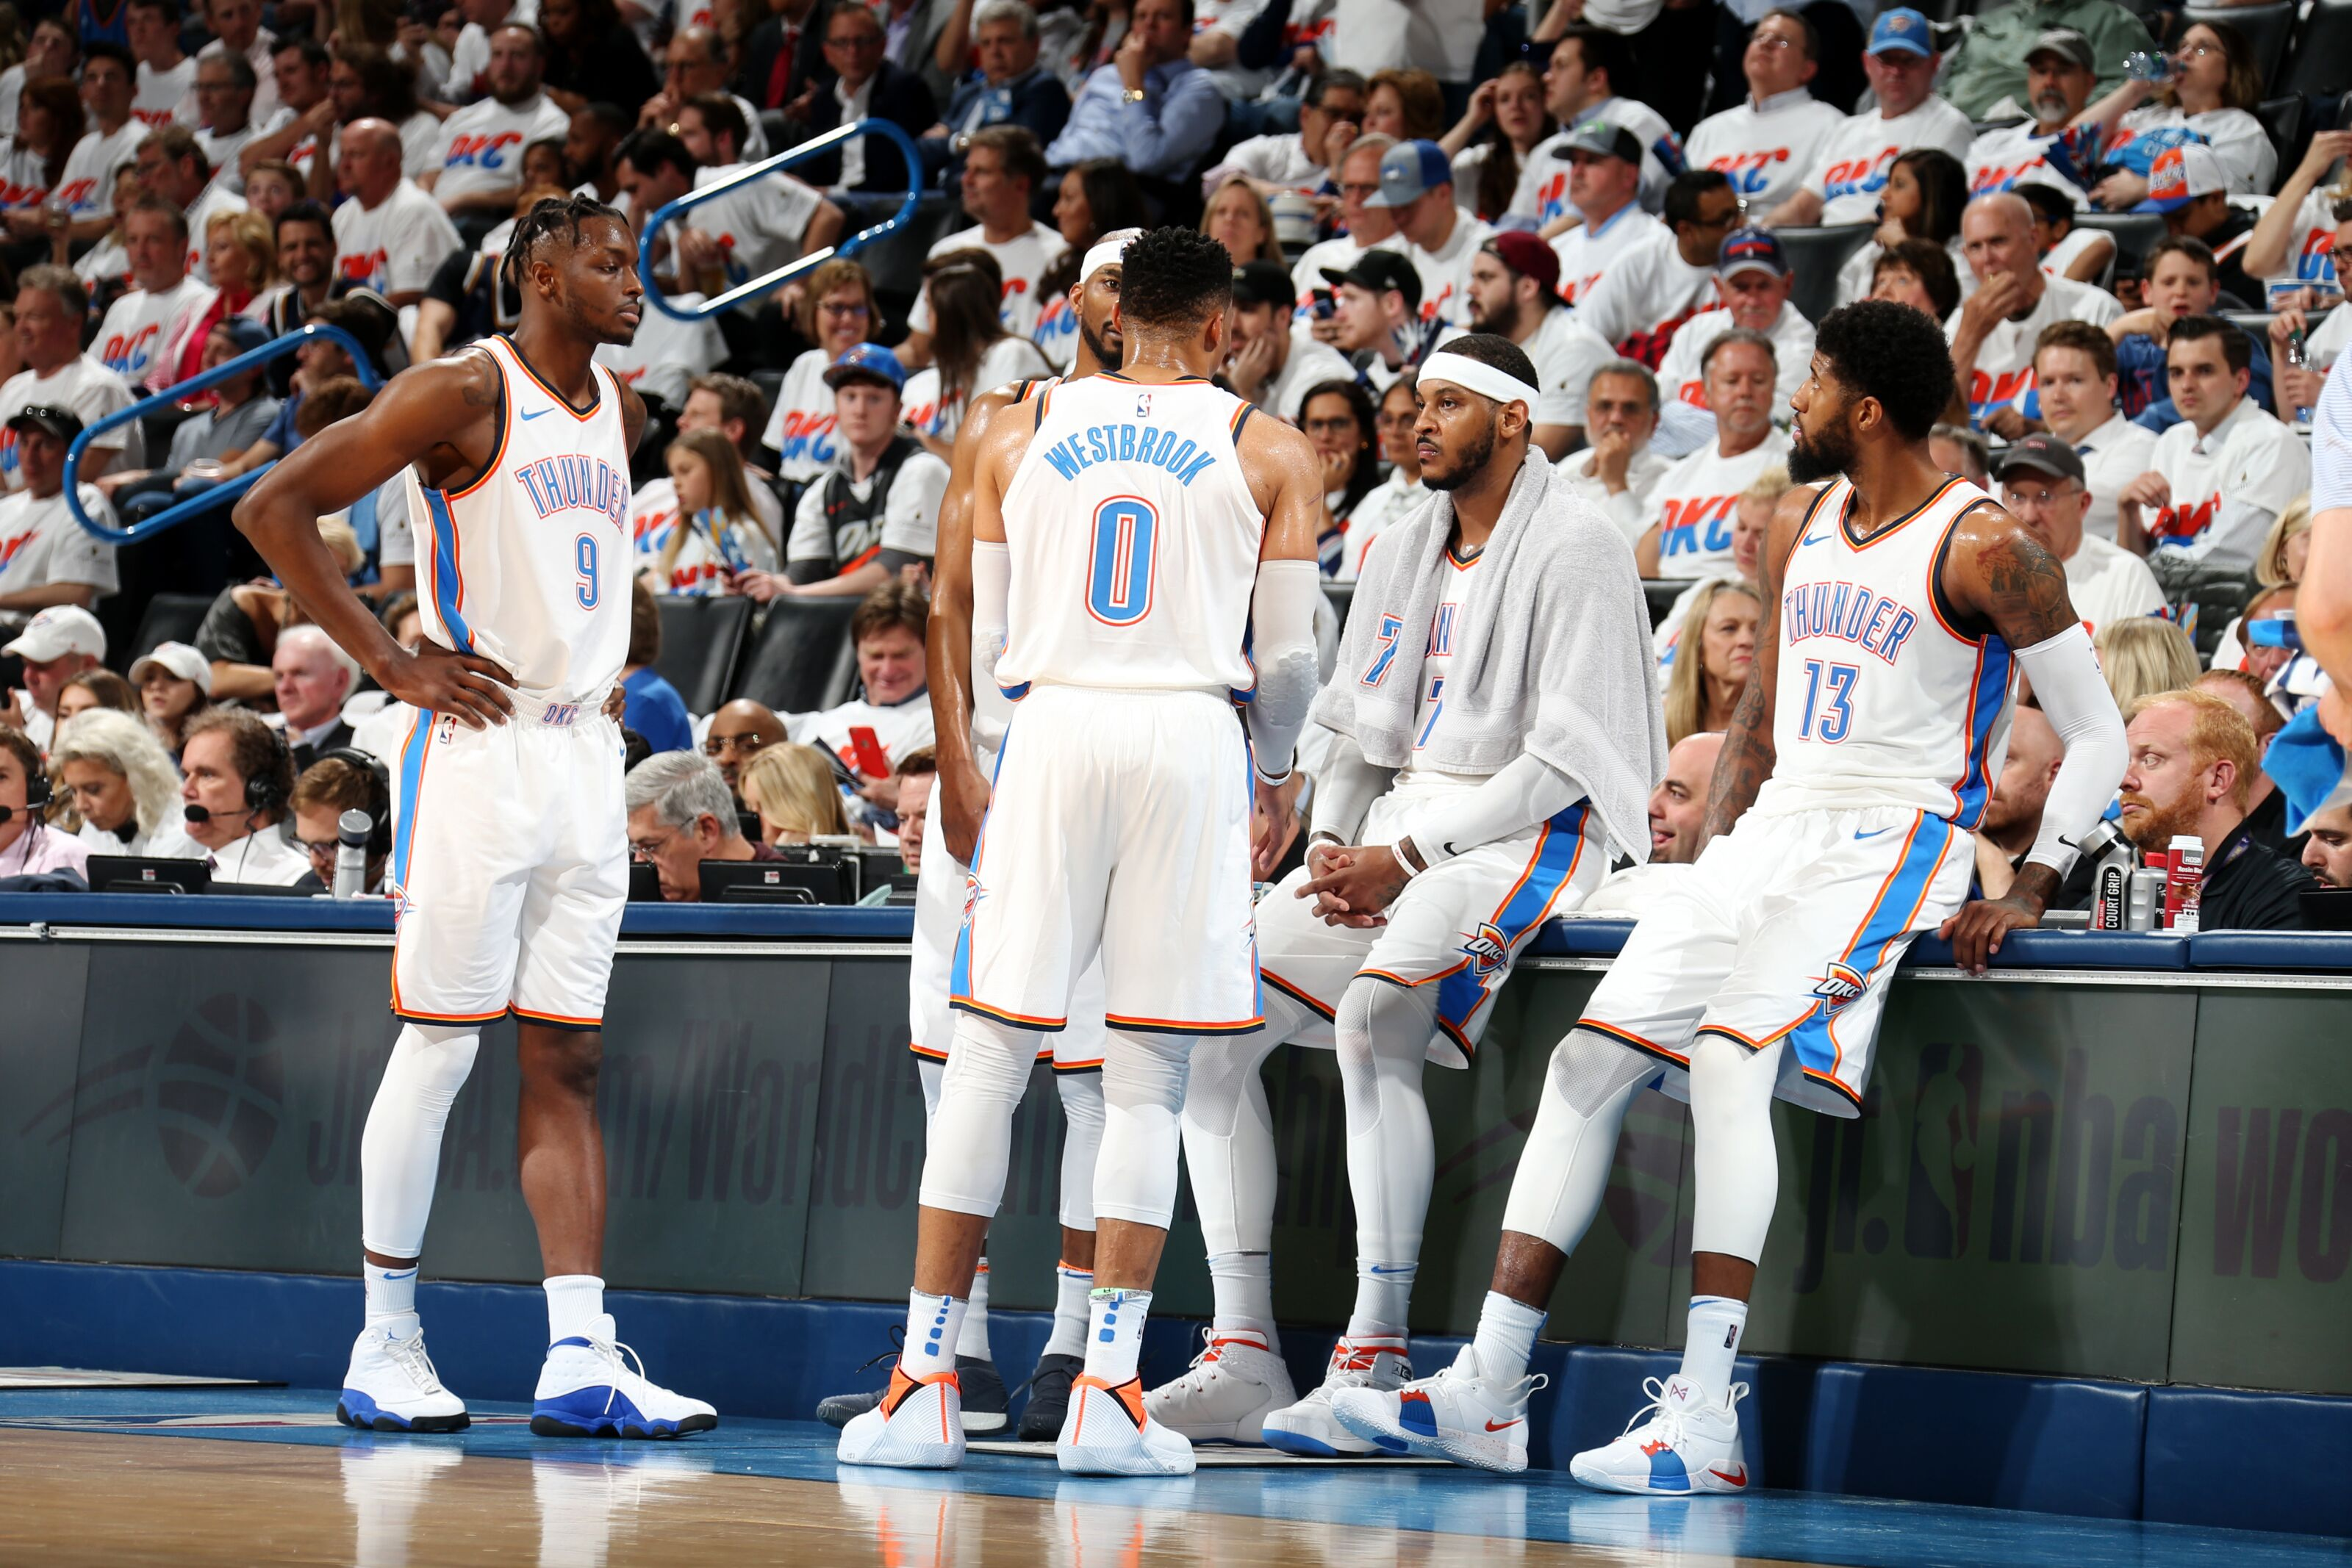 Oklahoma City Thunder  3 takeaways from Game 2 vs. Jazz 748d41e85